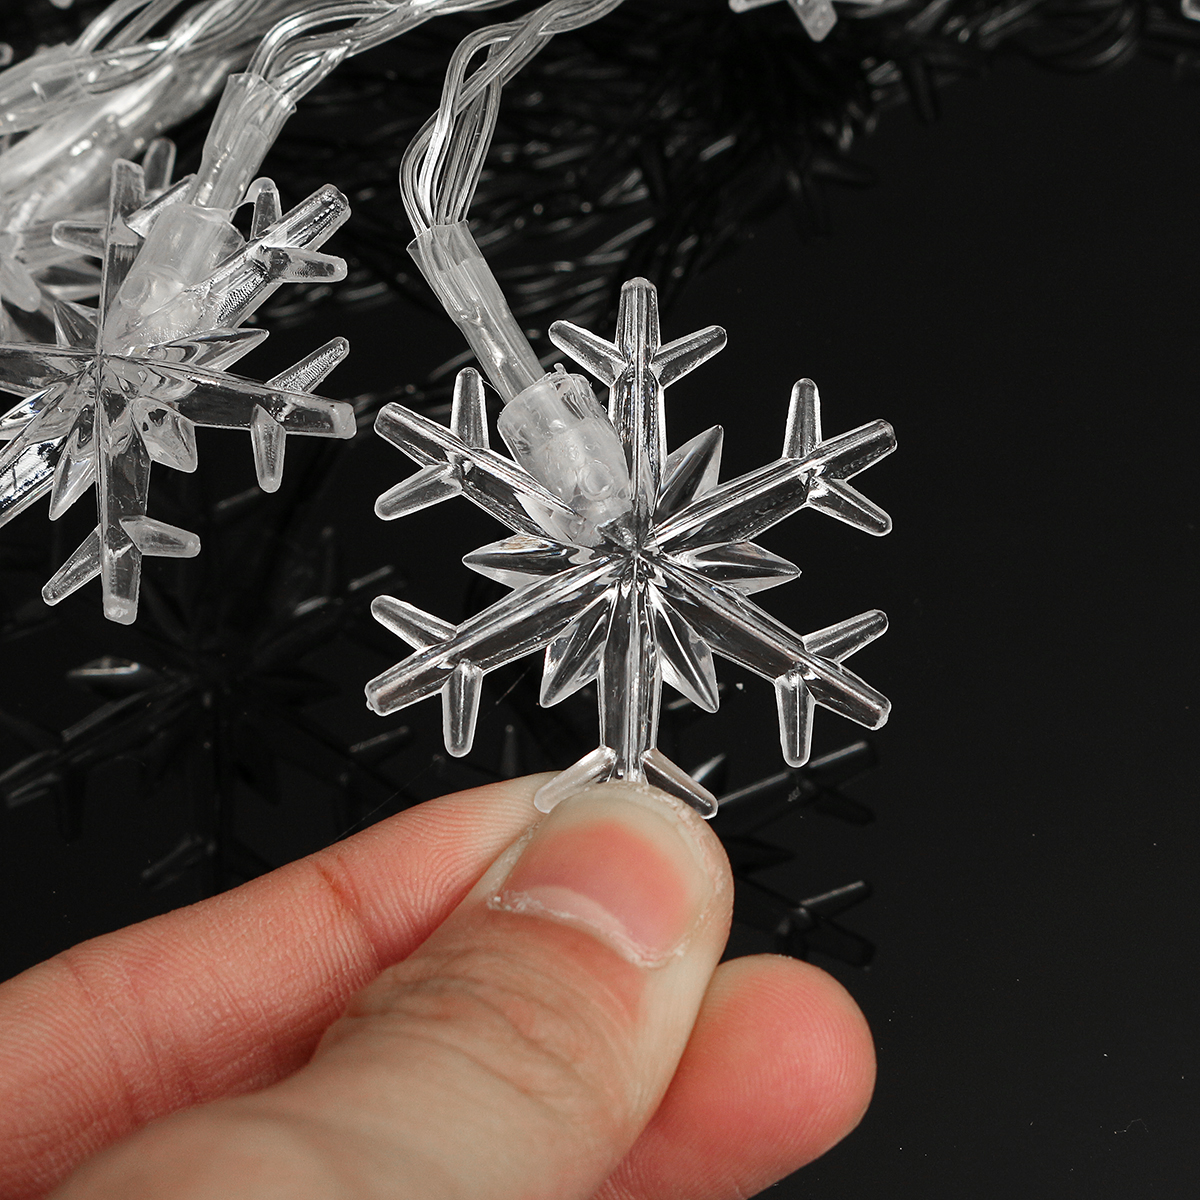 2.5M/5M LED Snowflakes String Christmas Light Christmas Tree Ornament Garland Hanging Decor